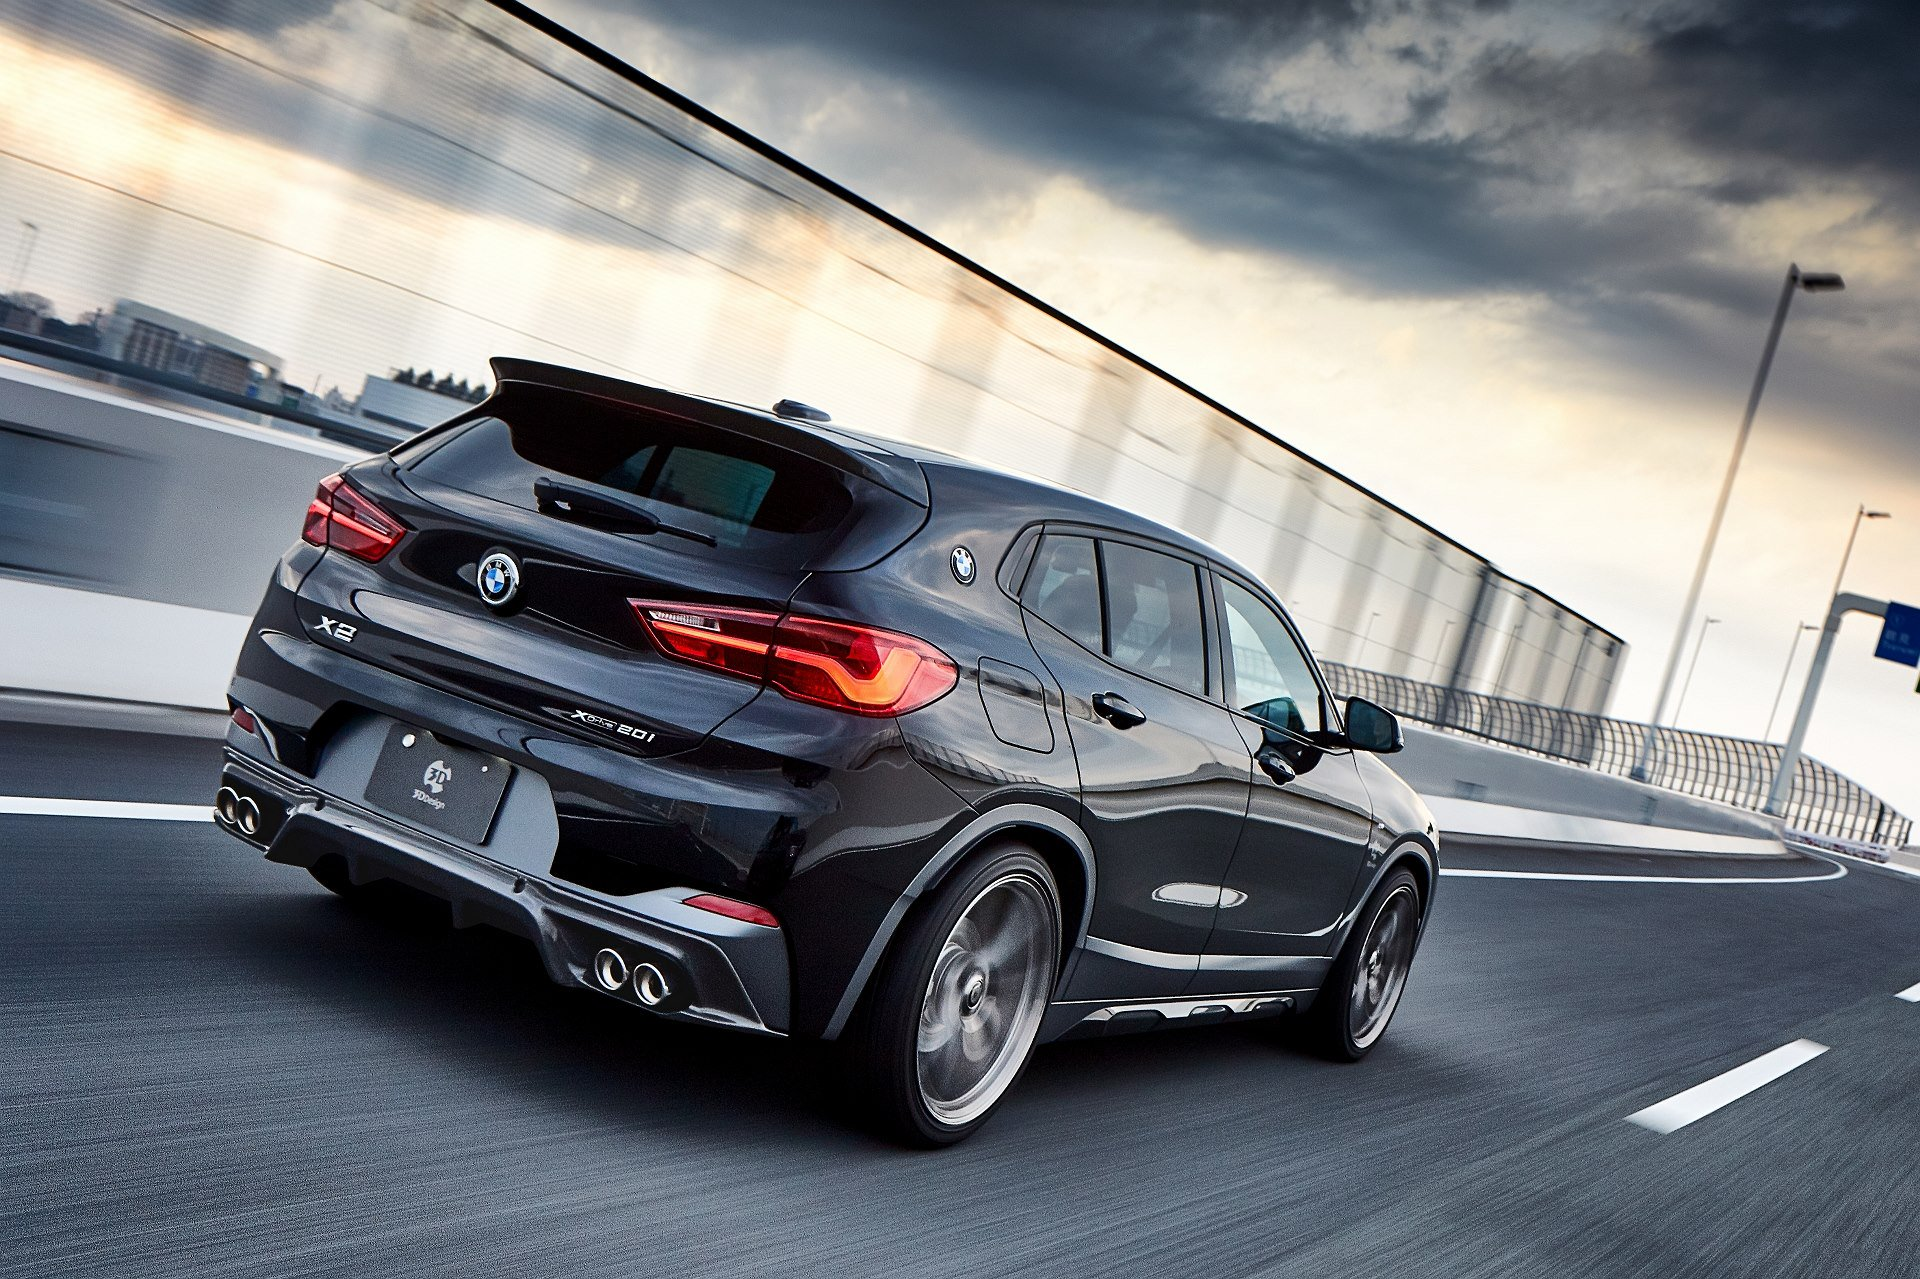 BMW X2 by 3D Design (2)